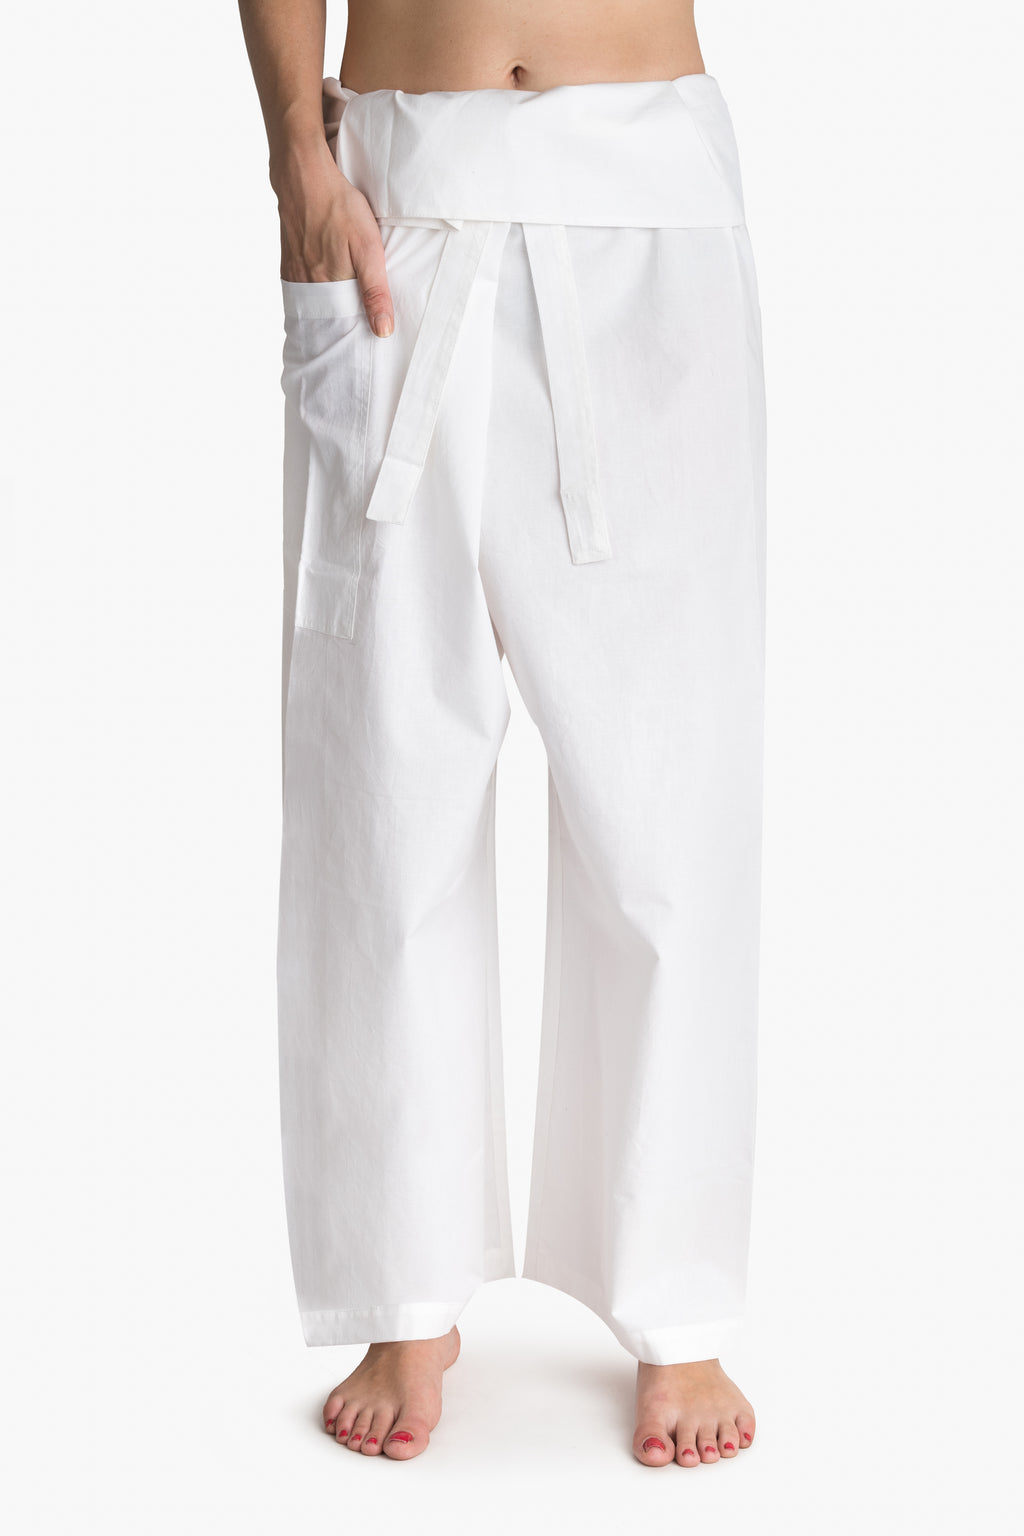 Yoga / Thai Fisherman Trousers - White